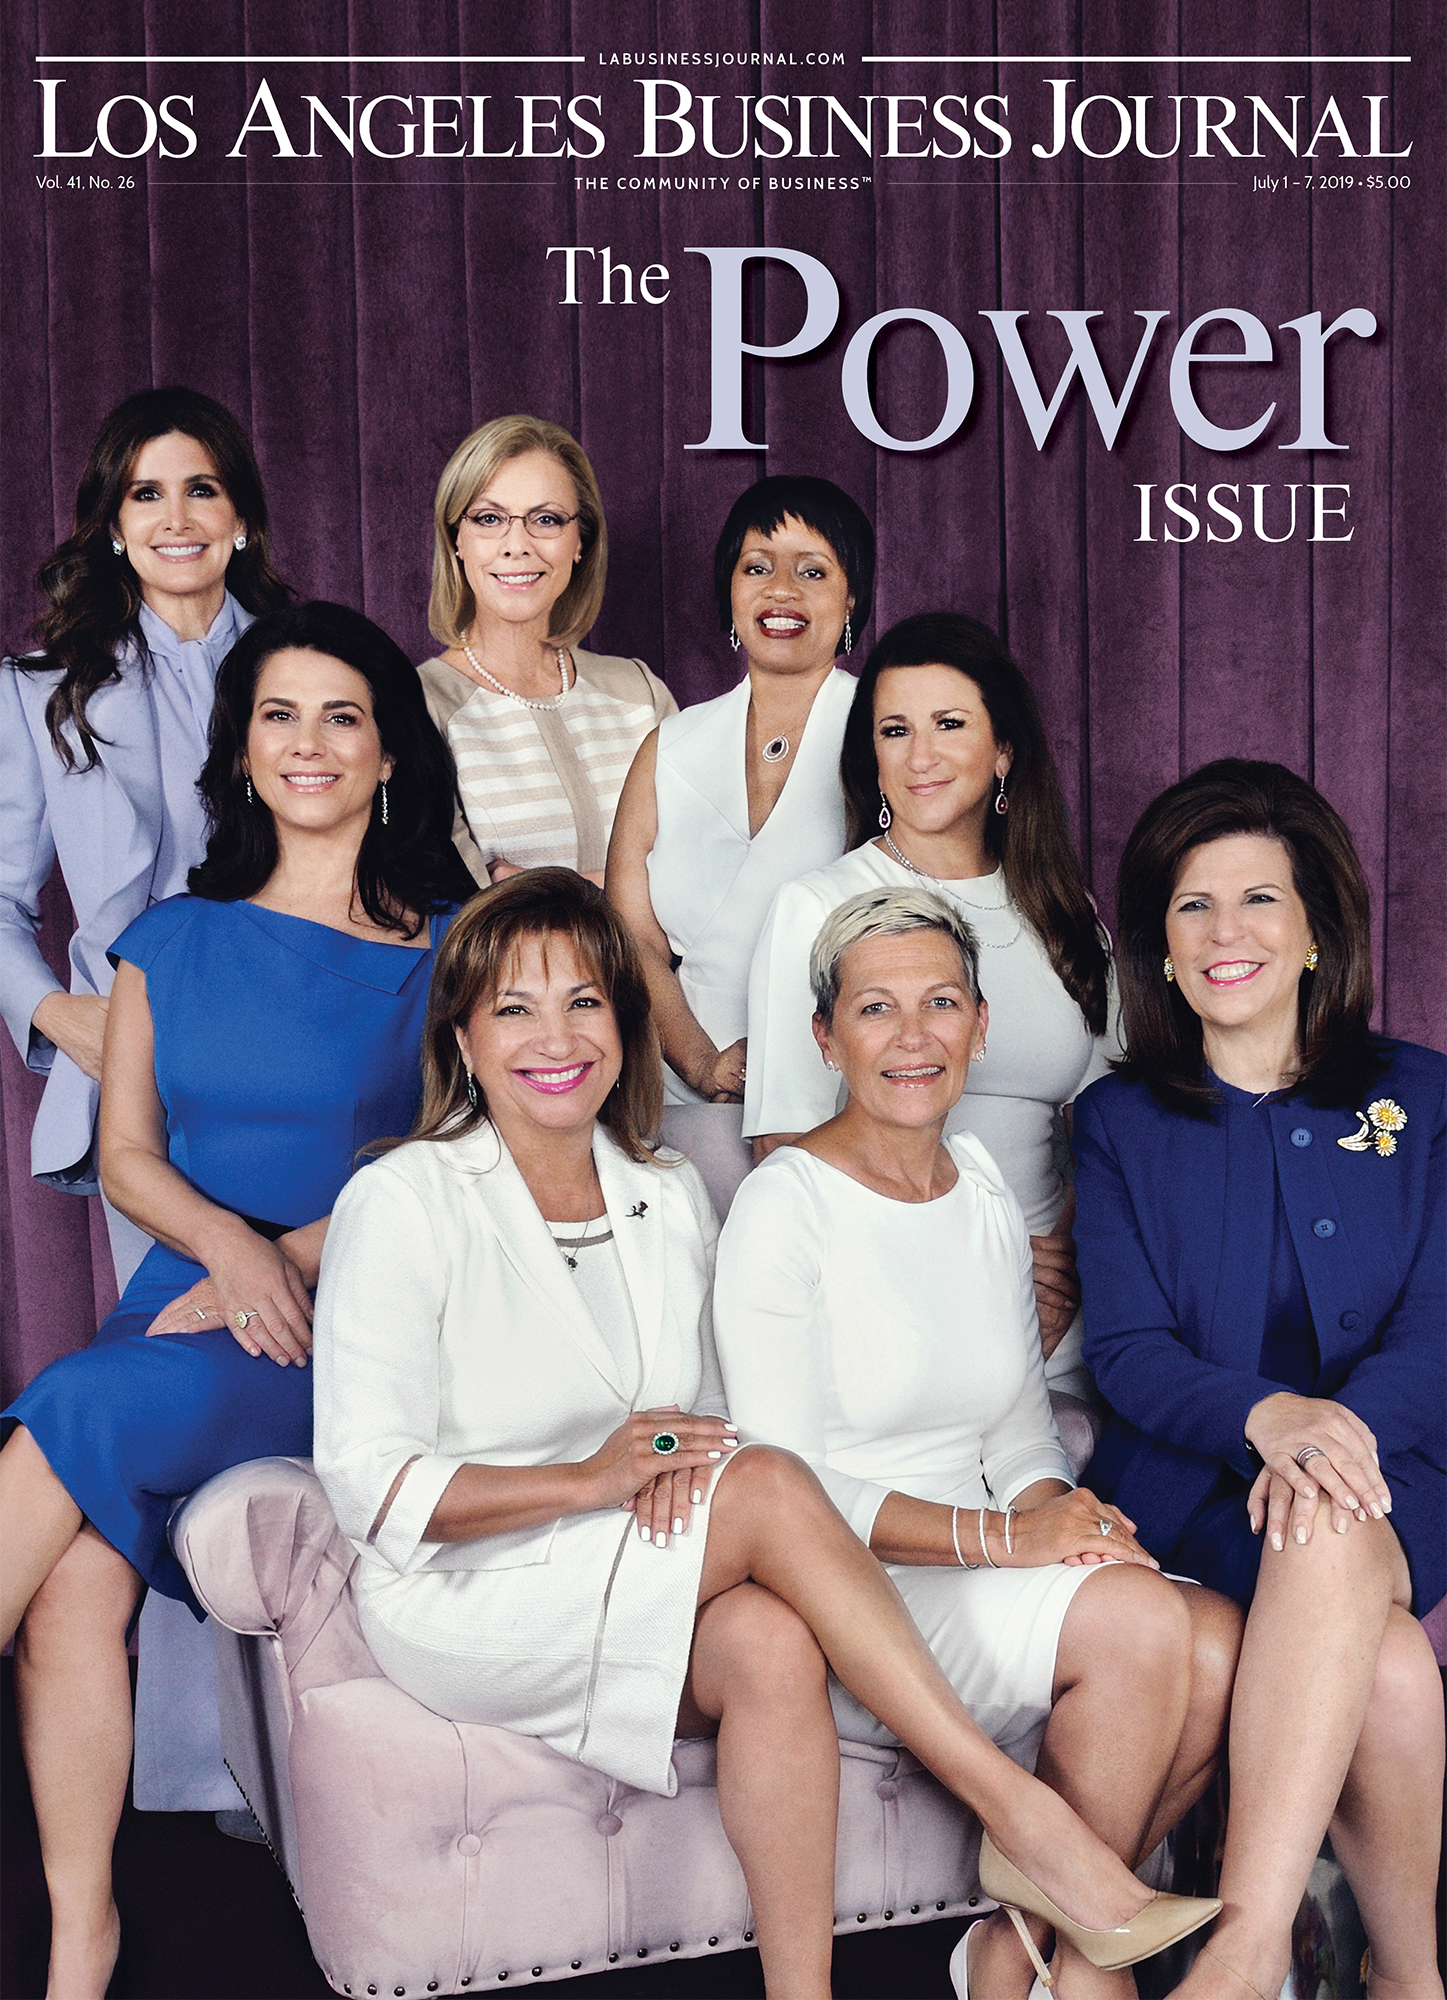 Los Angeles Business Journal The Power Issue